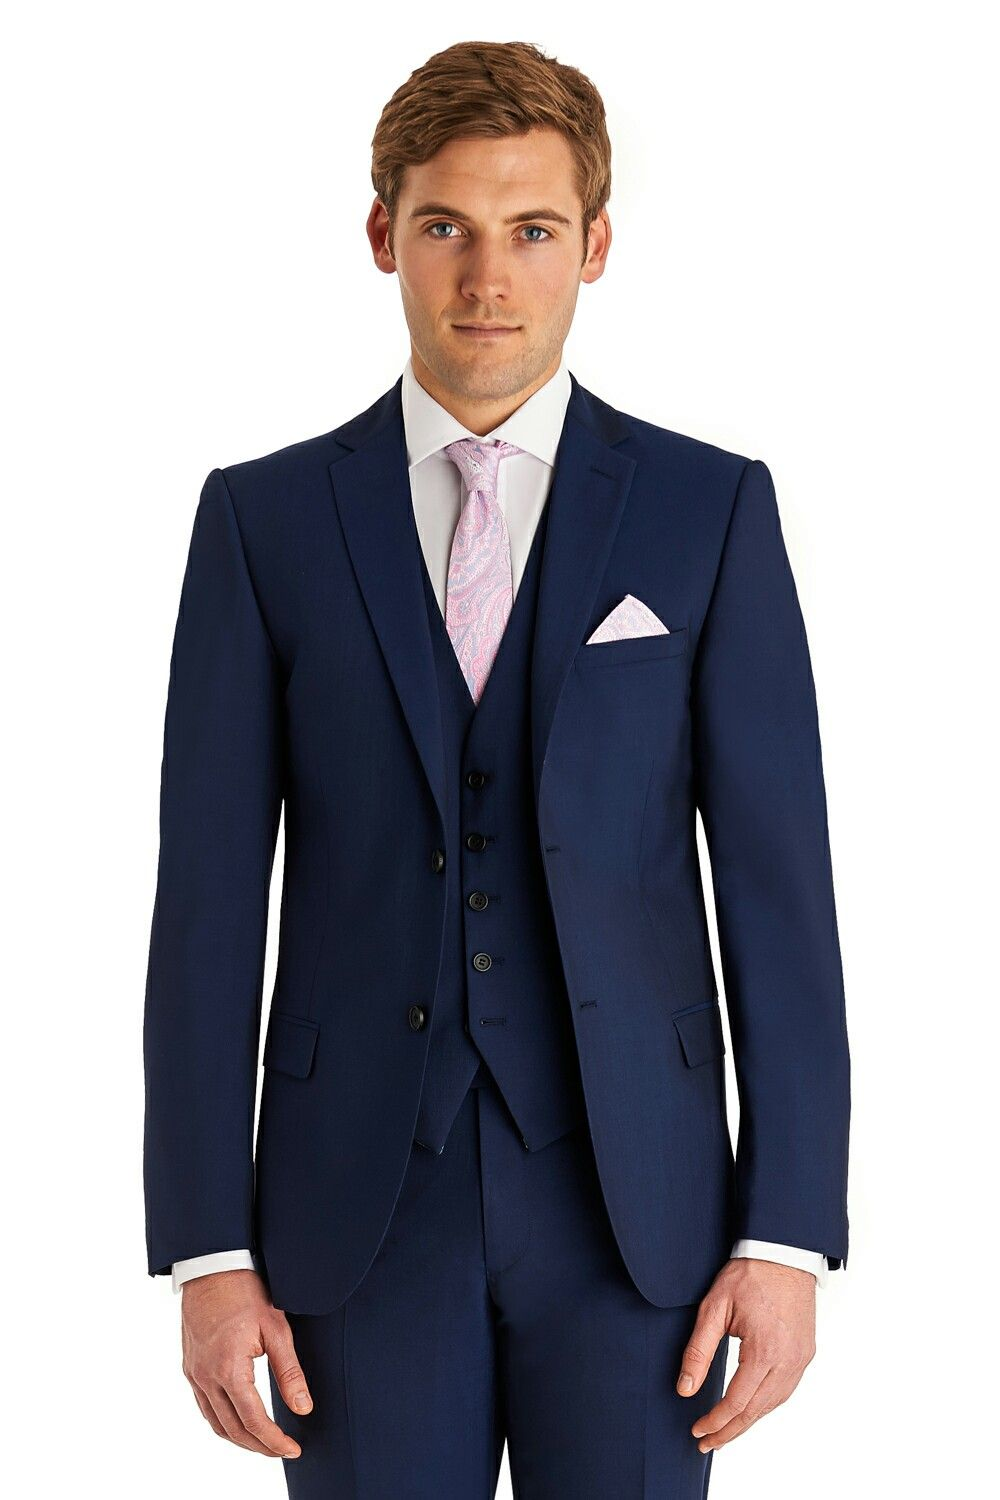 dfc8f904b06cc1 Ted Baker lounge lizard hire suit Exclusive to Moss bros. Pop in and see  one of our experts in store. #mossderby